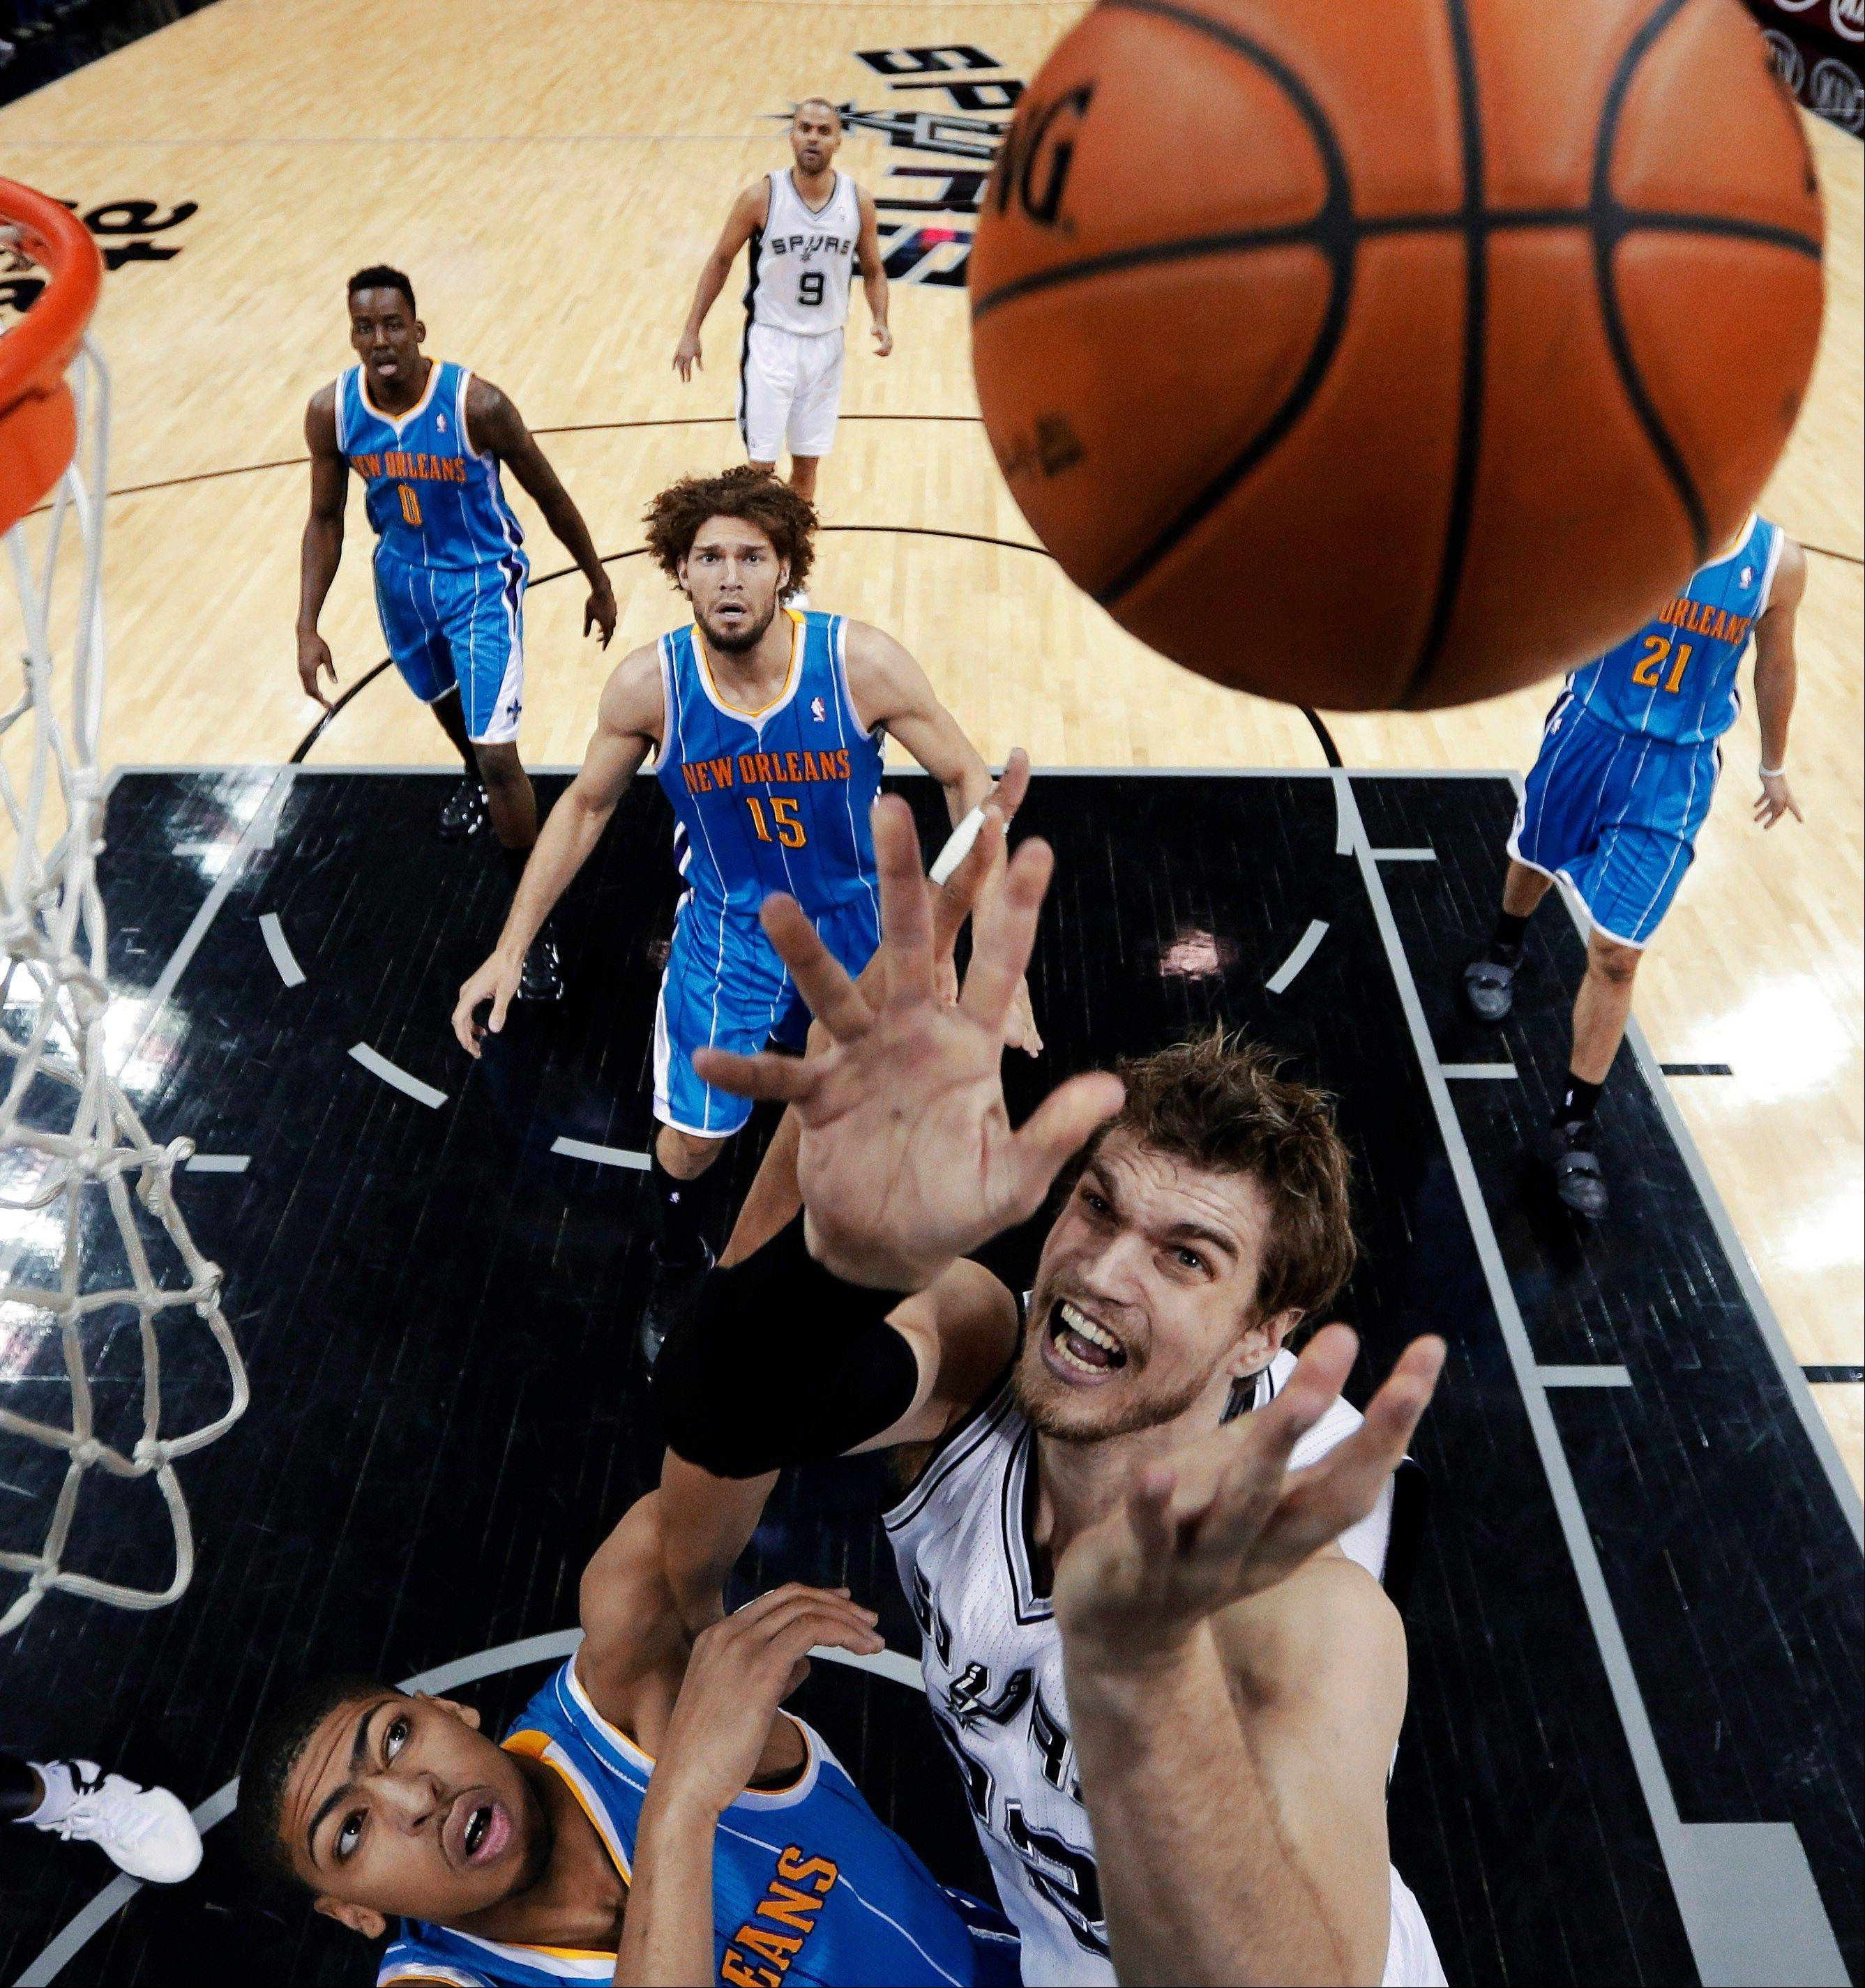 New Orleans Hornets' Anthony Davis, bottom left, and San Antonio Spurs' Tiago Splitter, bottom right, of Brazil, reach for a rebound during the first quarter of an NBA basketball game, Wednesday, Jan. 23, 2013, in San Antonio.